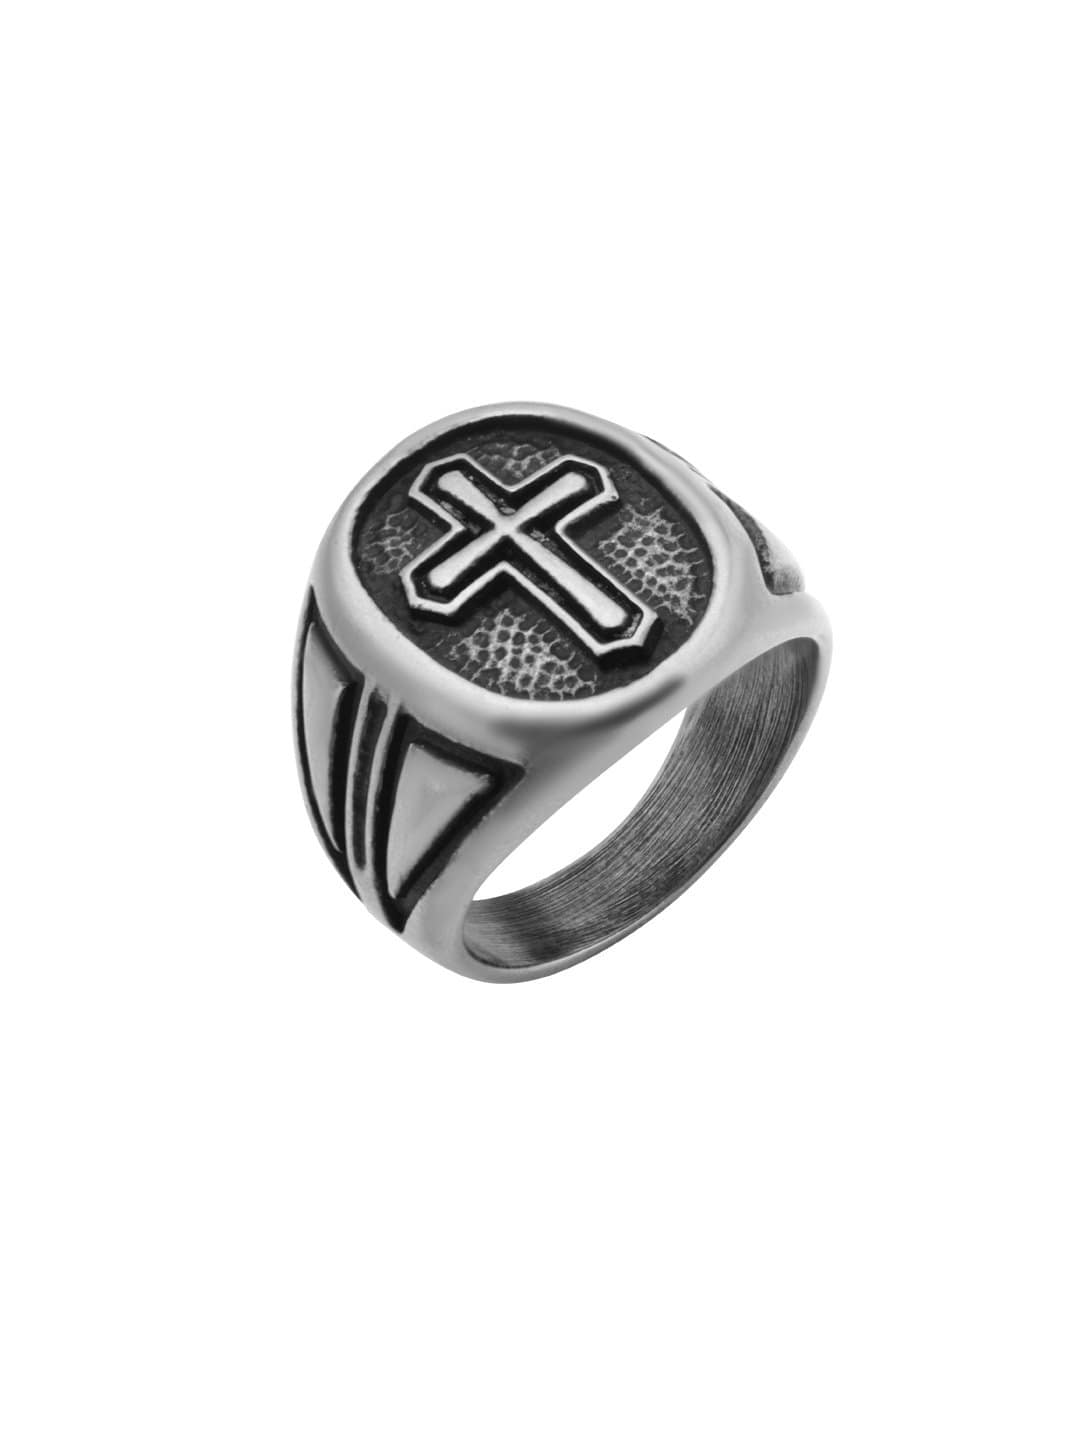 Darkened Silver Stainless Steel Gothic Cross Ring Rings